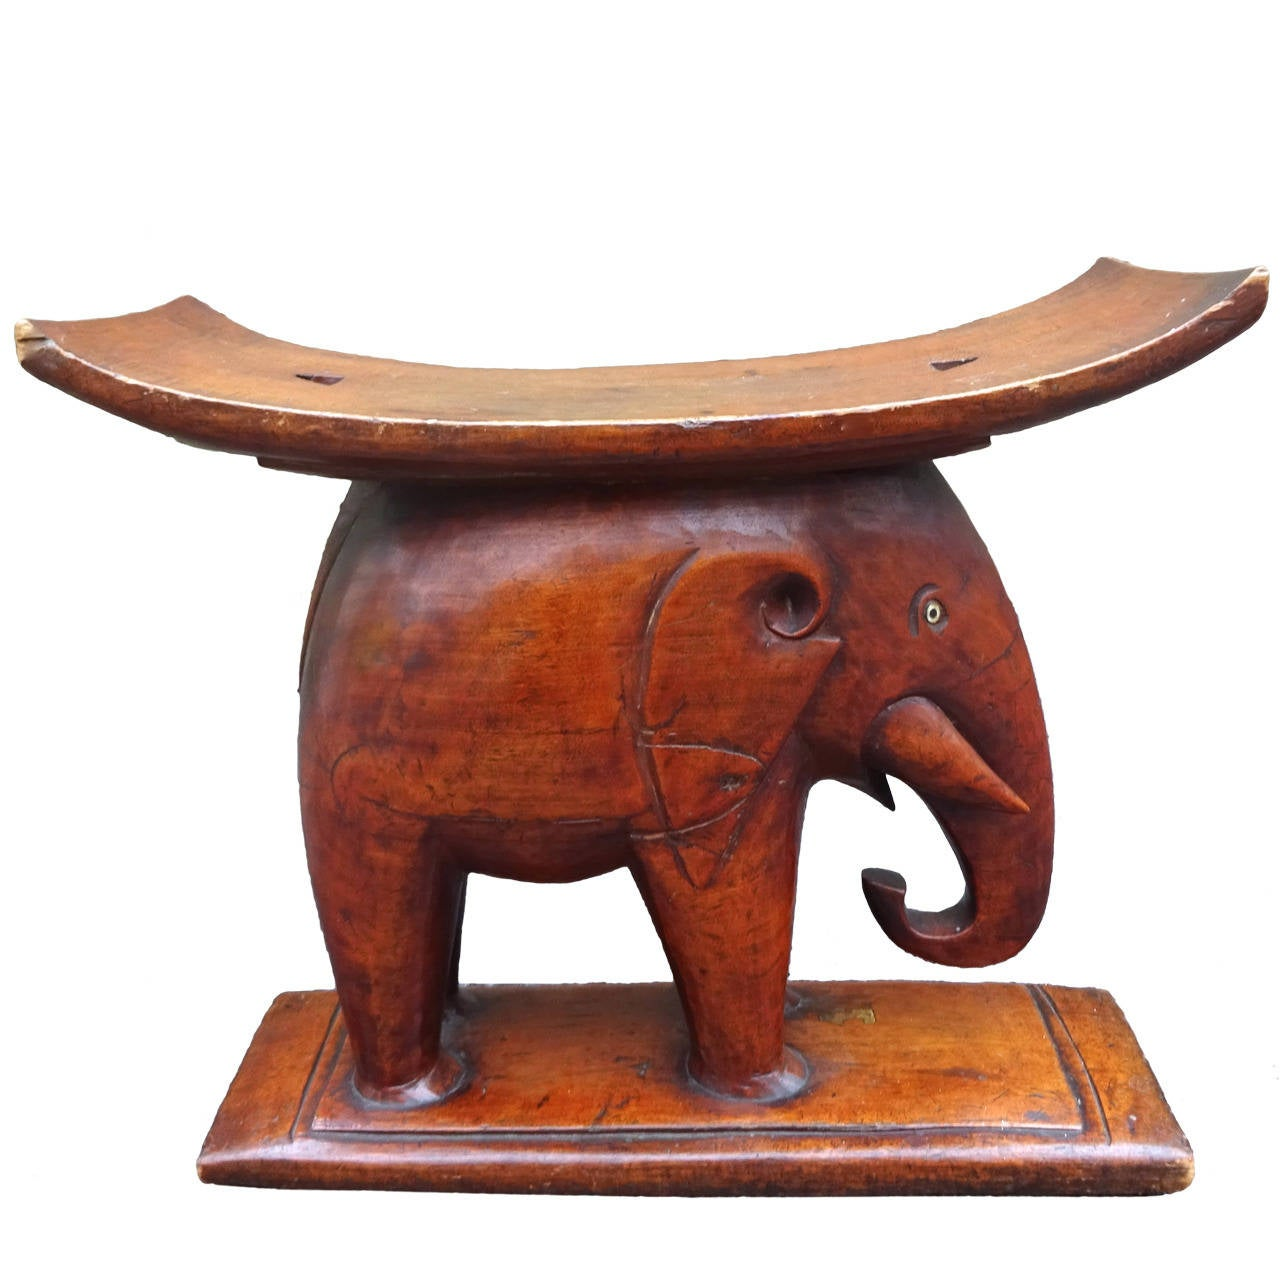 fabulous s african carved mahogany elephant stool at stdibs - fabulous s african carved mahogany elephant stool